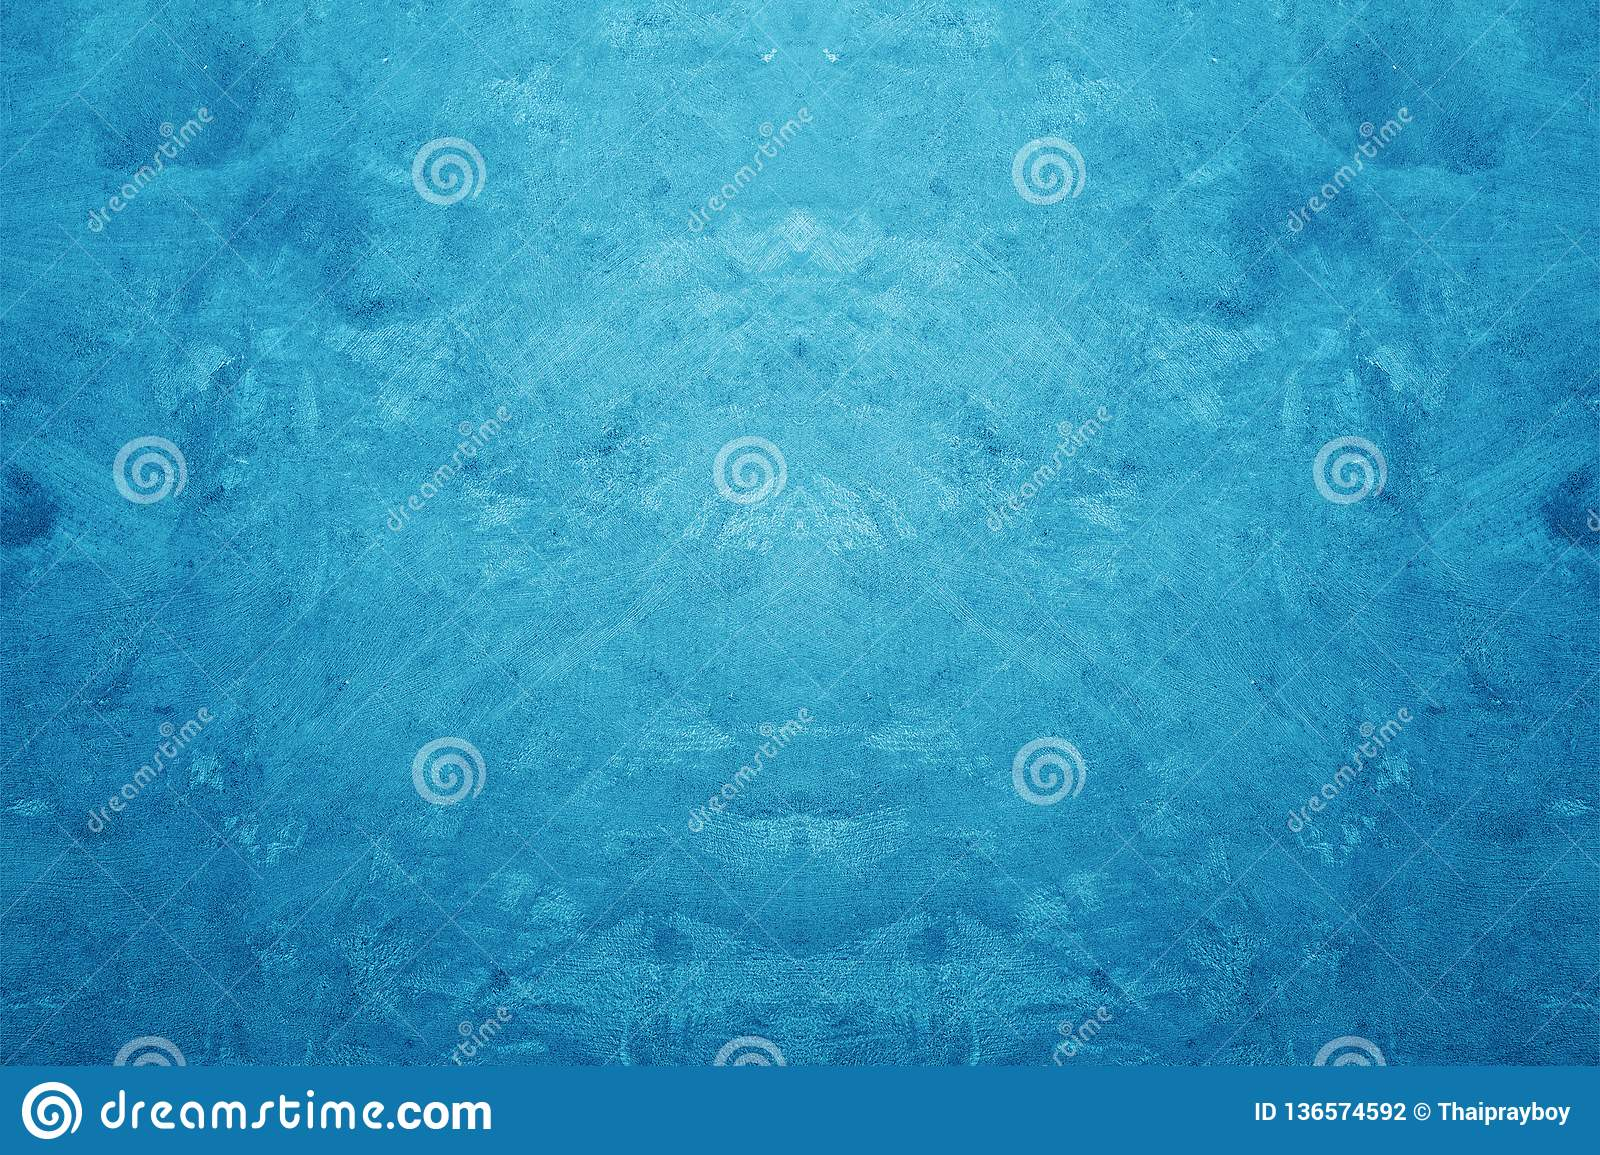 Creative Blue Color Rough and Grunge Concrete Texture Background